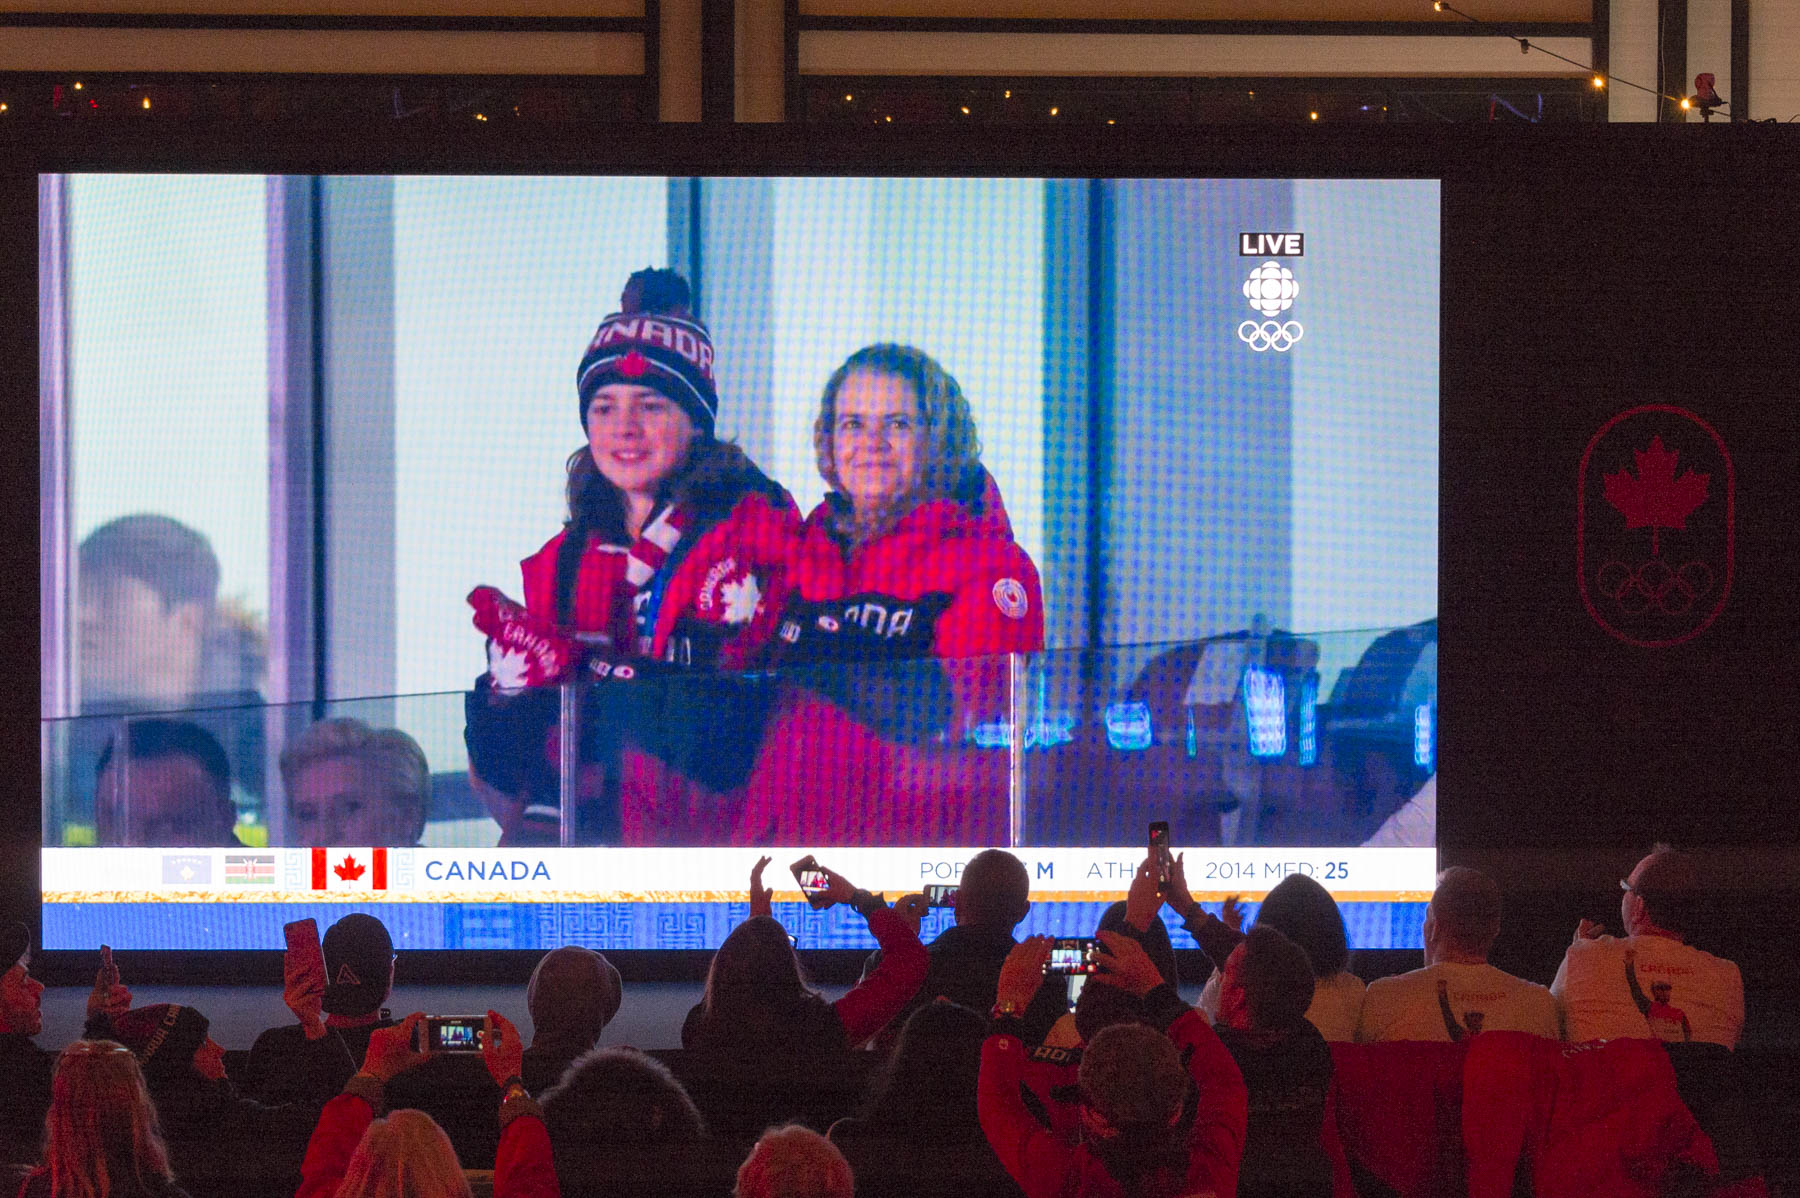 The Governor General joined by her son Laurier cheered proudly from the stands Team Canada members as they made their way into the Stadium.